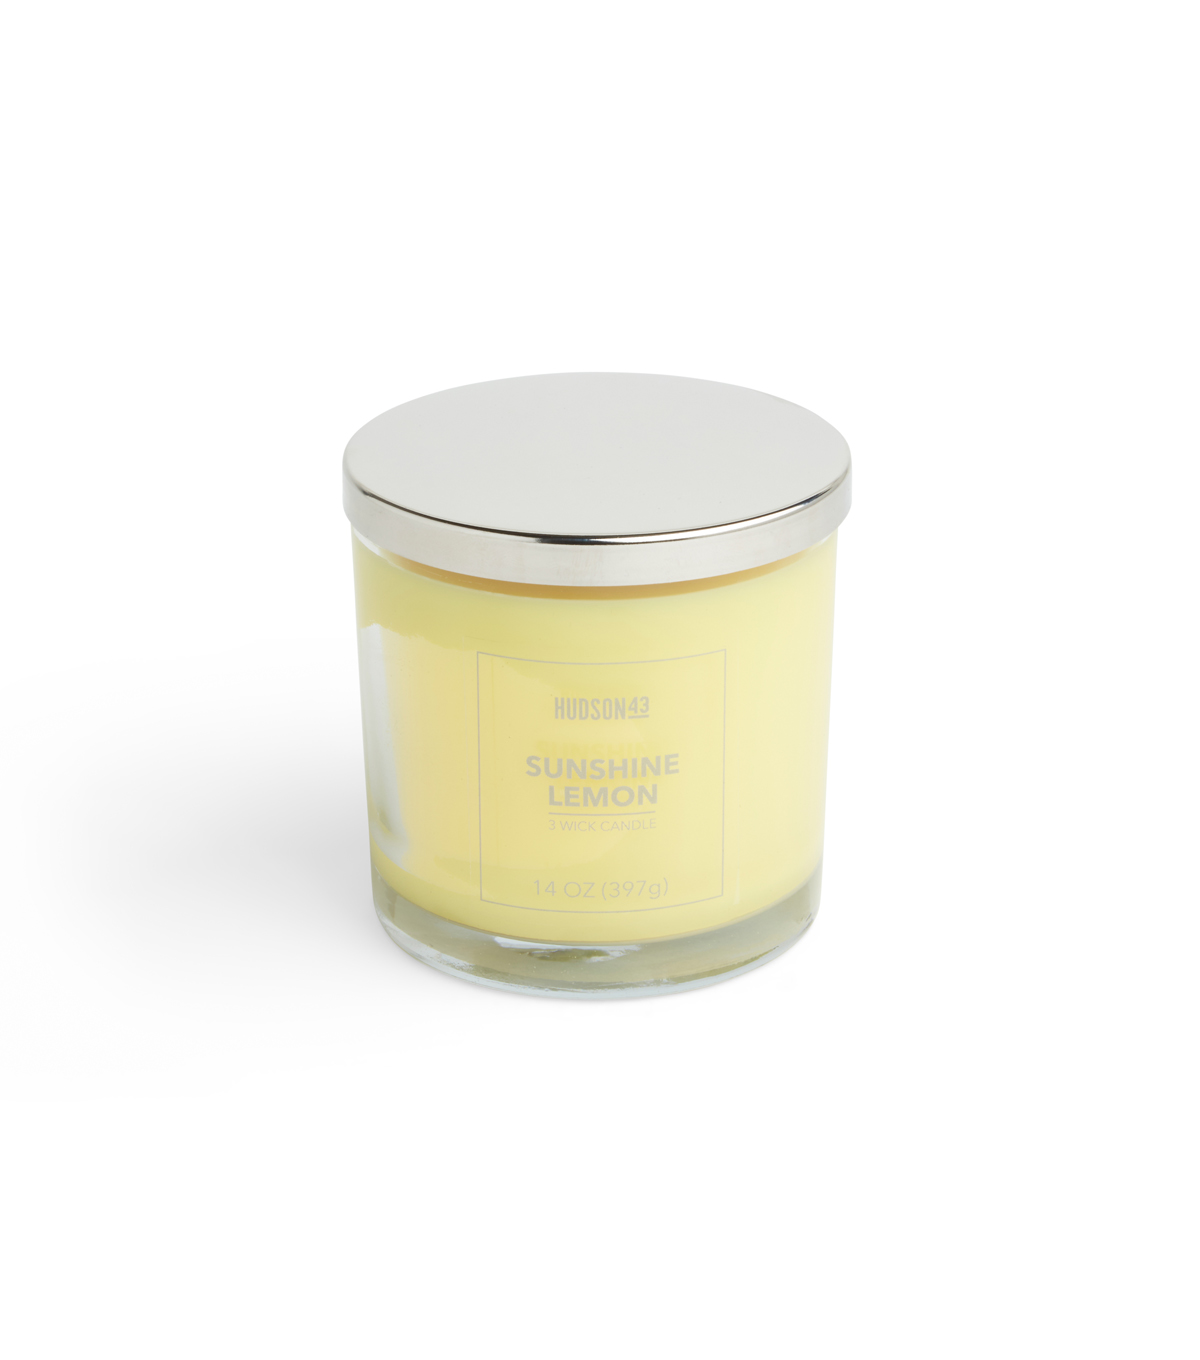 Hudson 43 Candle & Light 14 oz. Sunshine Lemon Scented Jar Candle